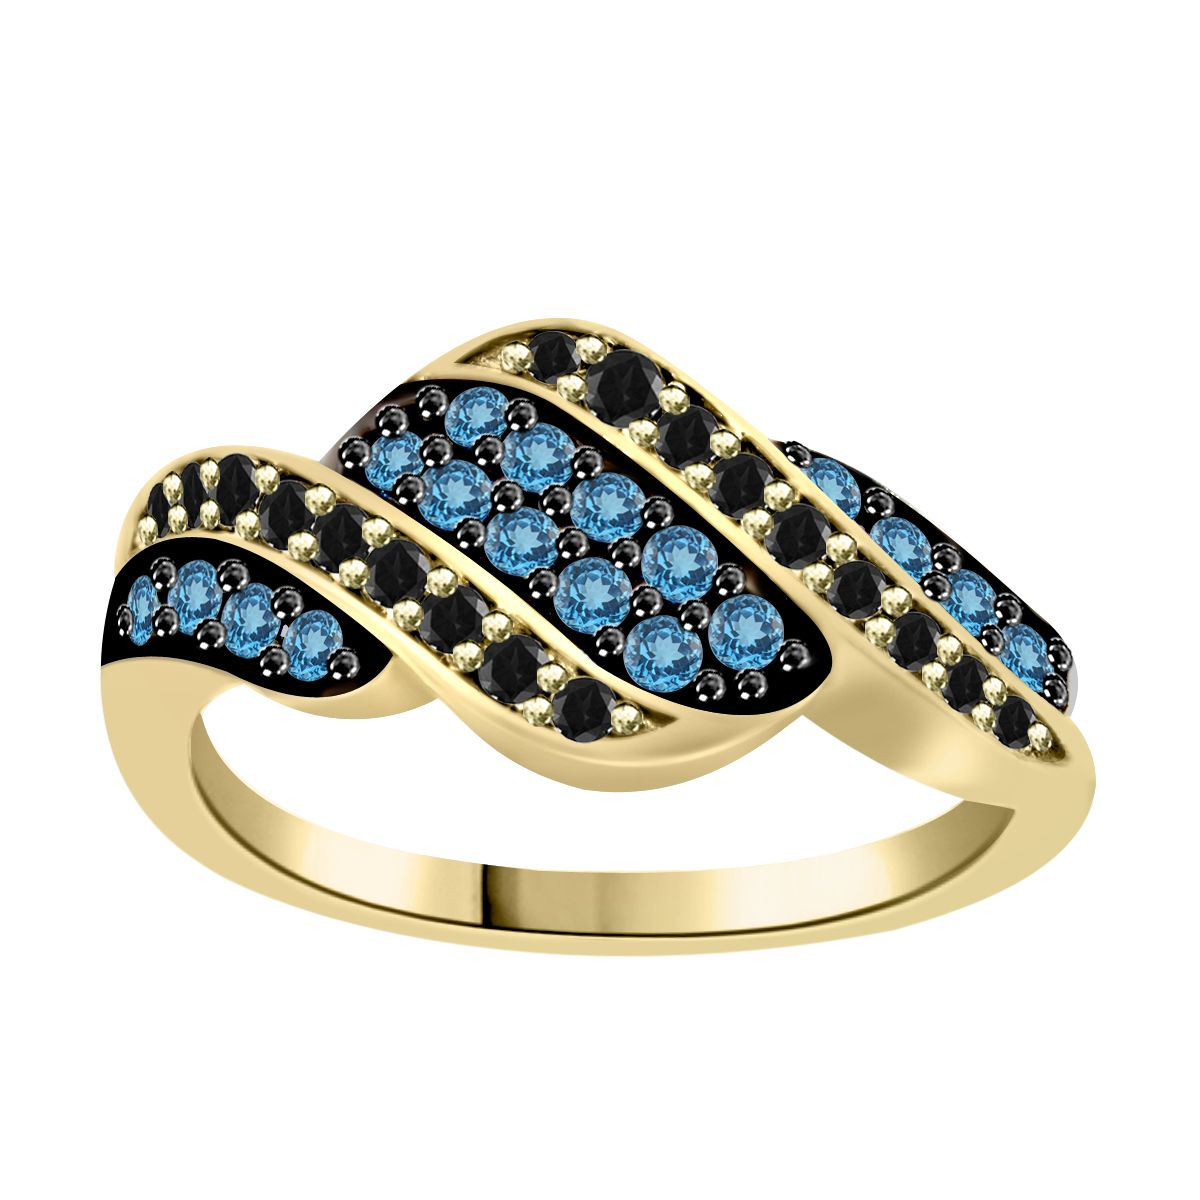 Black and blue diamond wave ring in yellow gold